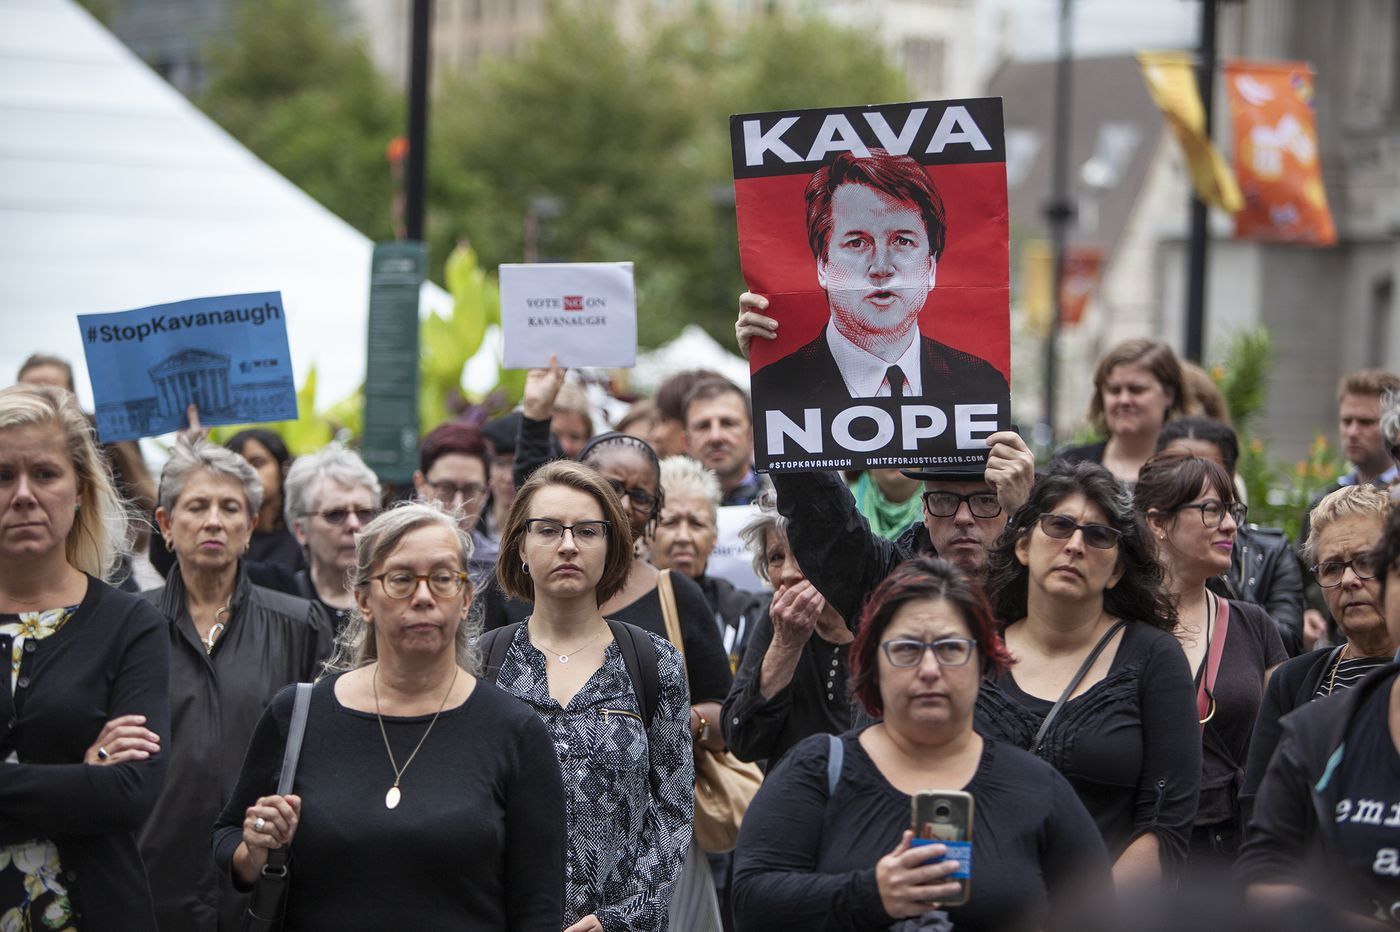 While Washington roils over Kavanaugh, and Cosby faces prison, Philly women protest with their stories